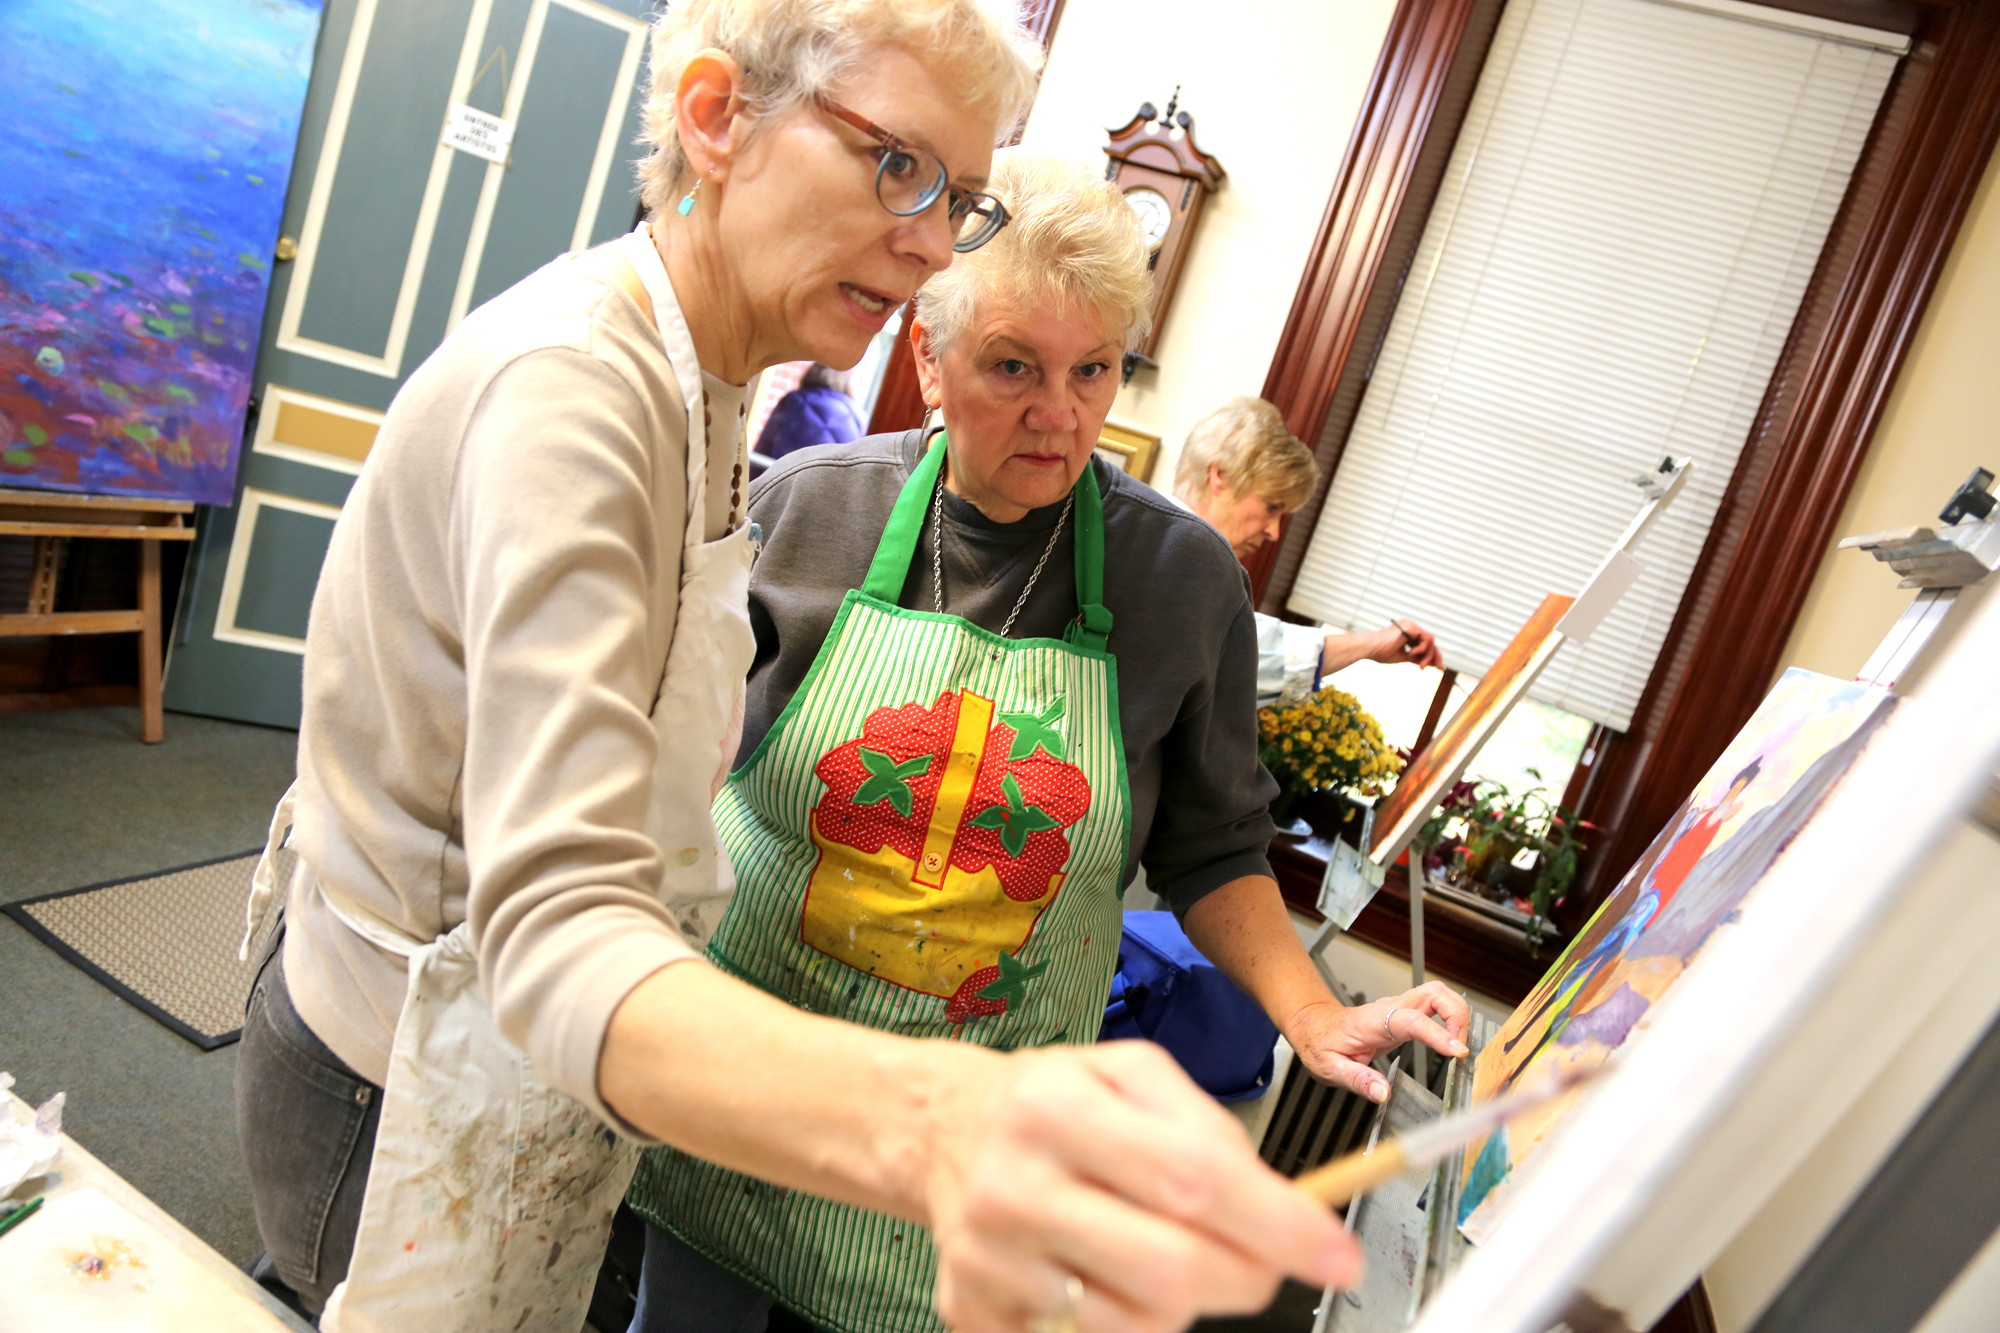 From left, painter and teacher Marion Stephenson helps with her Dover Township student Jewel Stough's painting in her home at 721 S. George St., York. Photo by Sonya Paclob